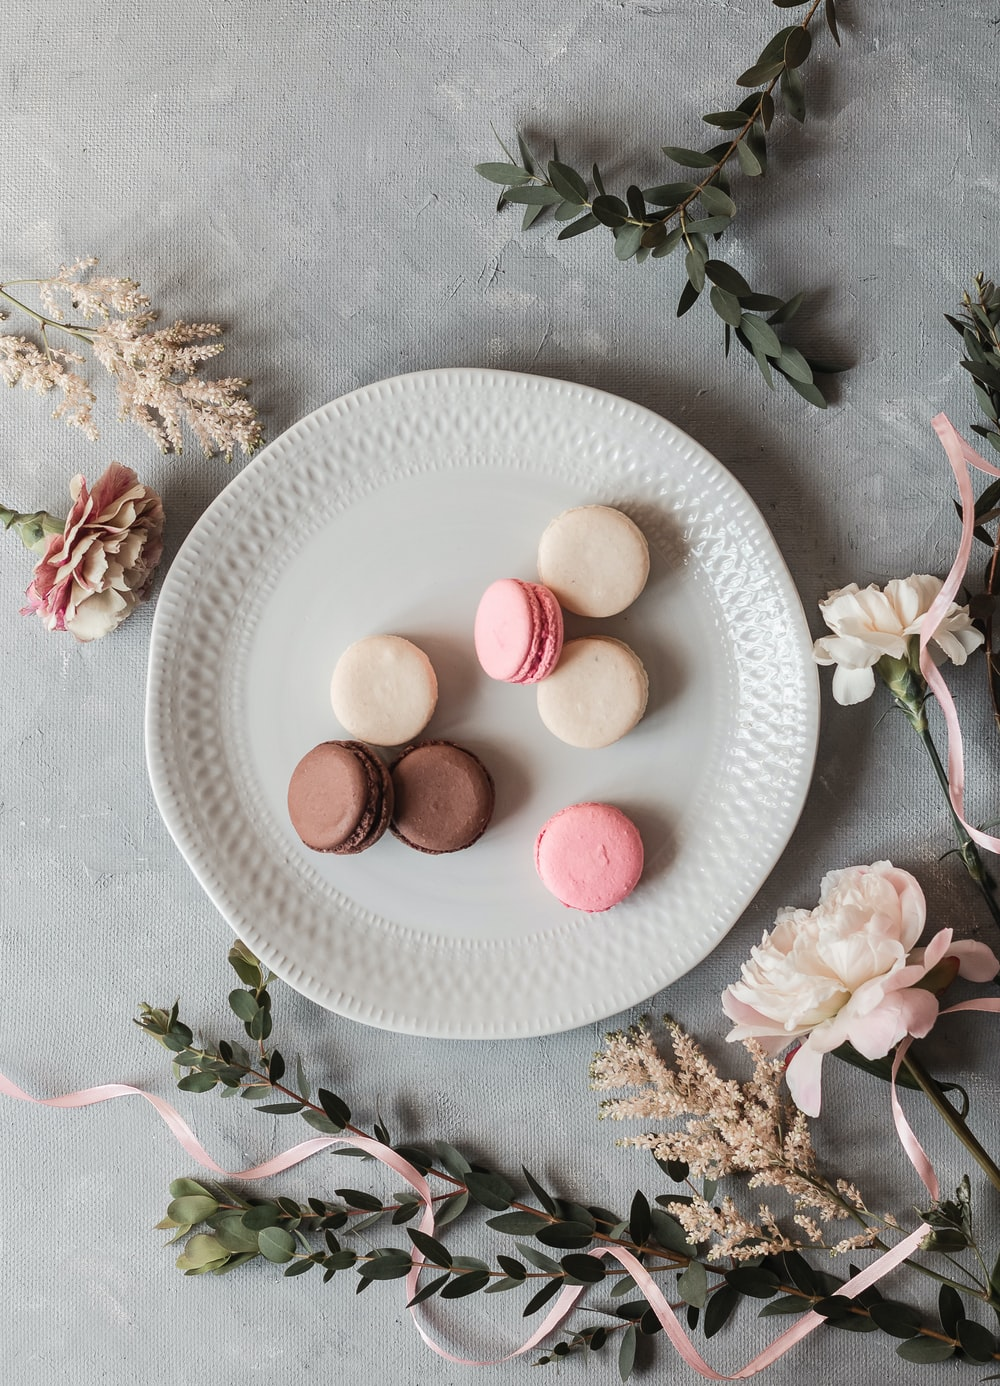 pink and white eggs on white ceramic plate